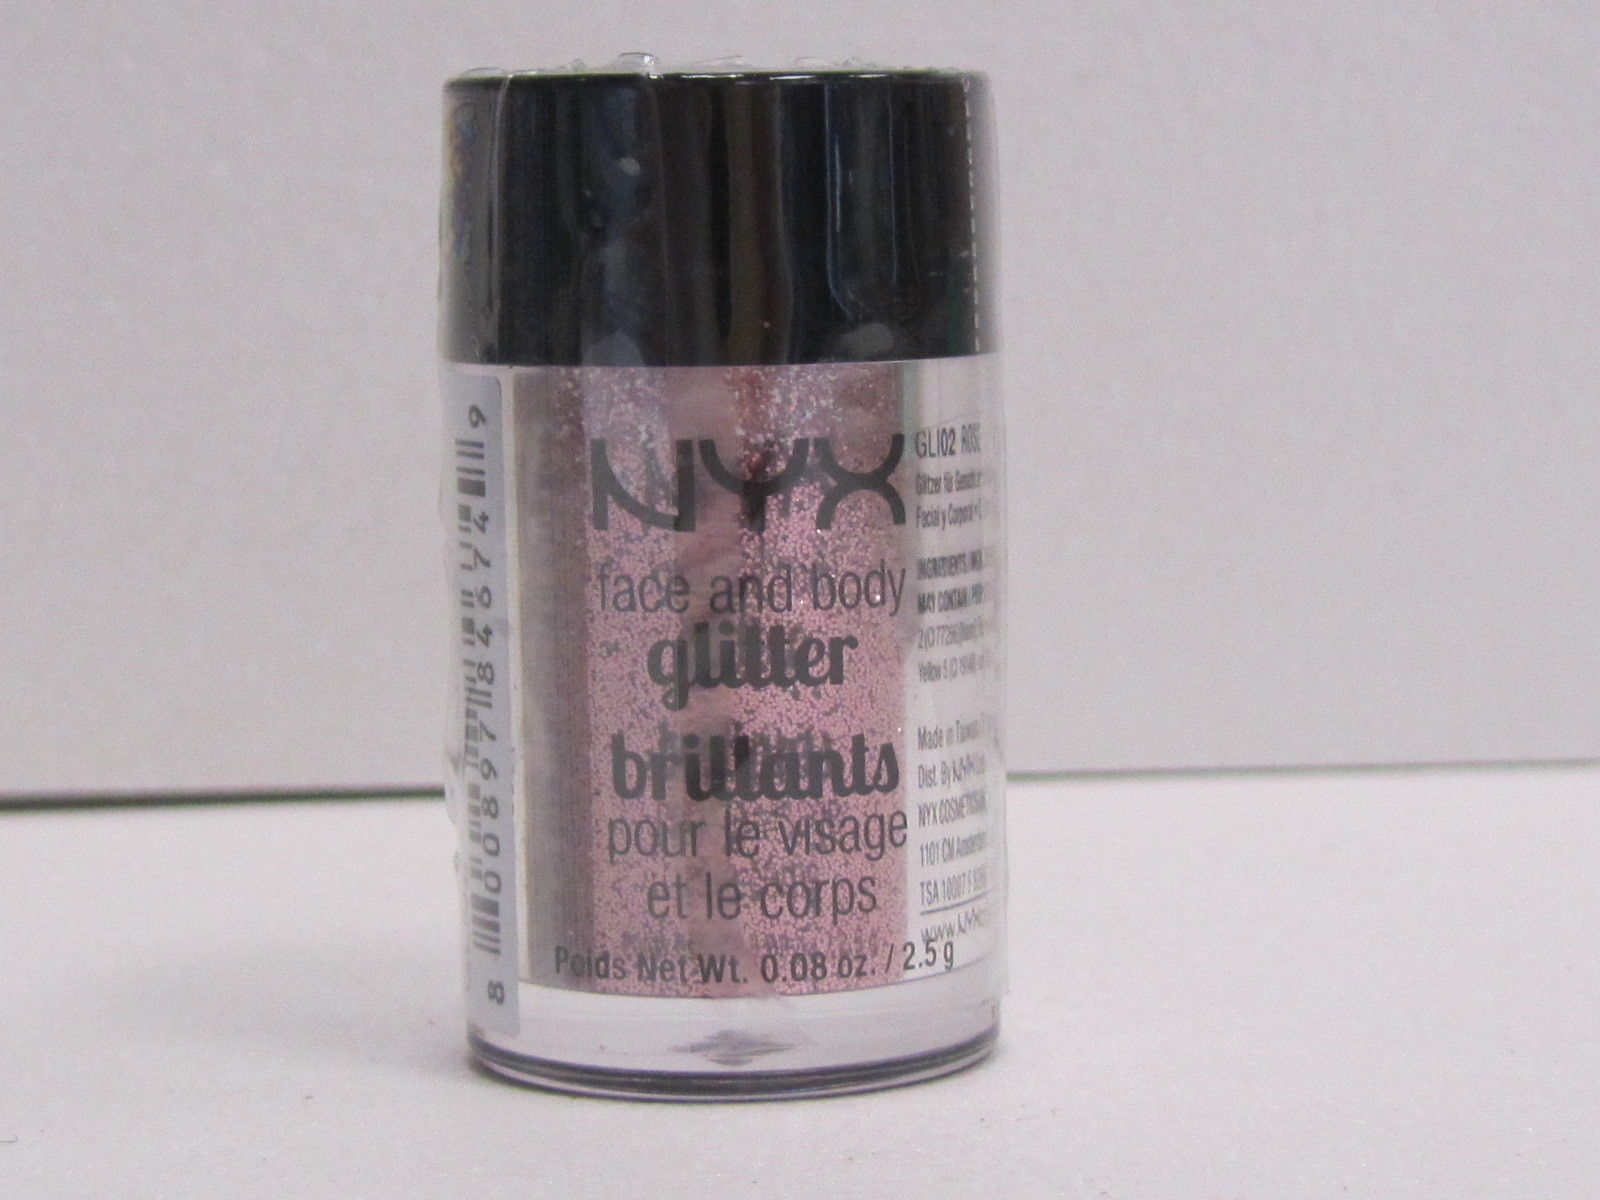 NYX Face and Body Glitter color GLI02 Rose 0.08 oz Brand New With Sealed